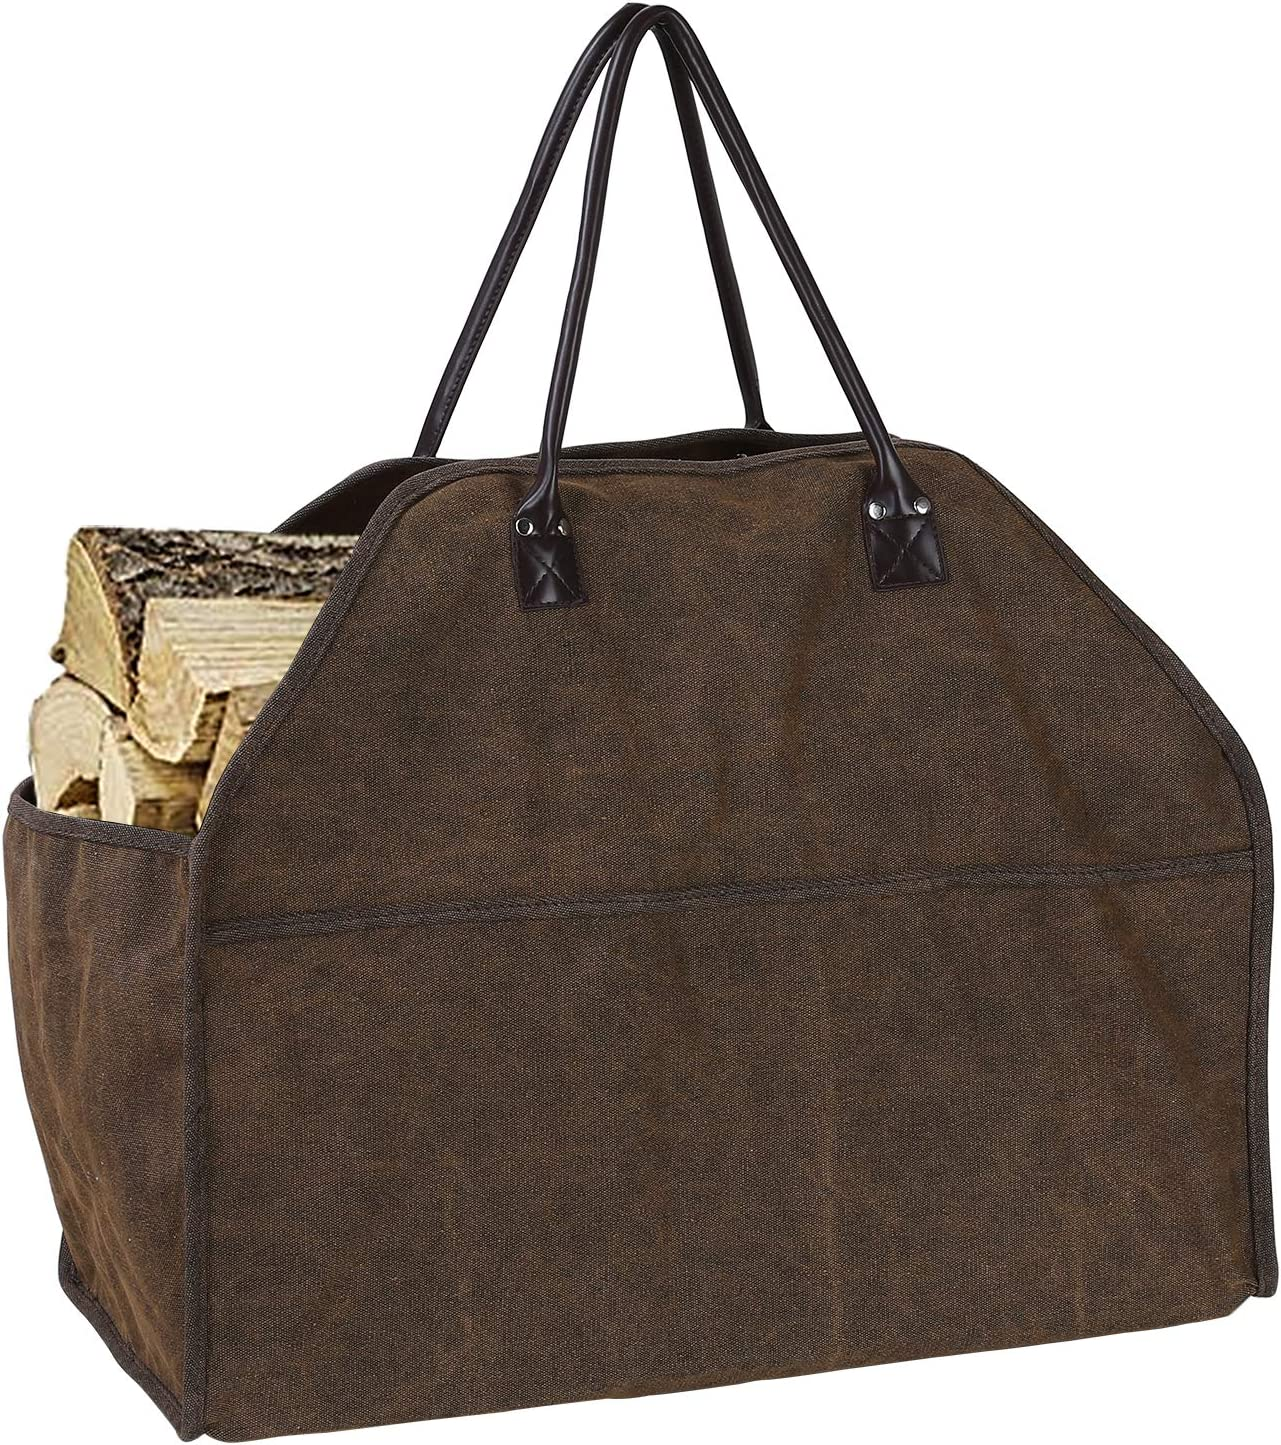 femor Log Carrier, Canvas firewood Bag, firewood Holder, Fire Wood Carriers, Durable Wood Bag Heavy Duty,Fireplace Wood Stove Accessories Storage Bag for Fire Pit